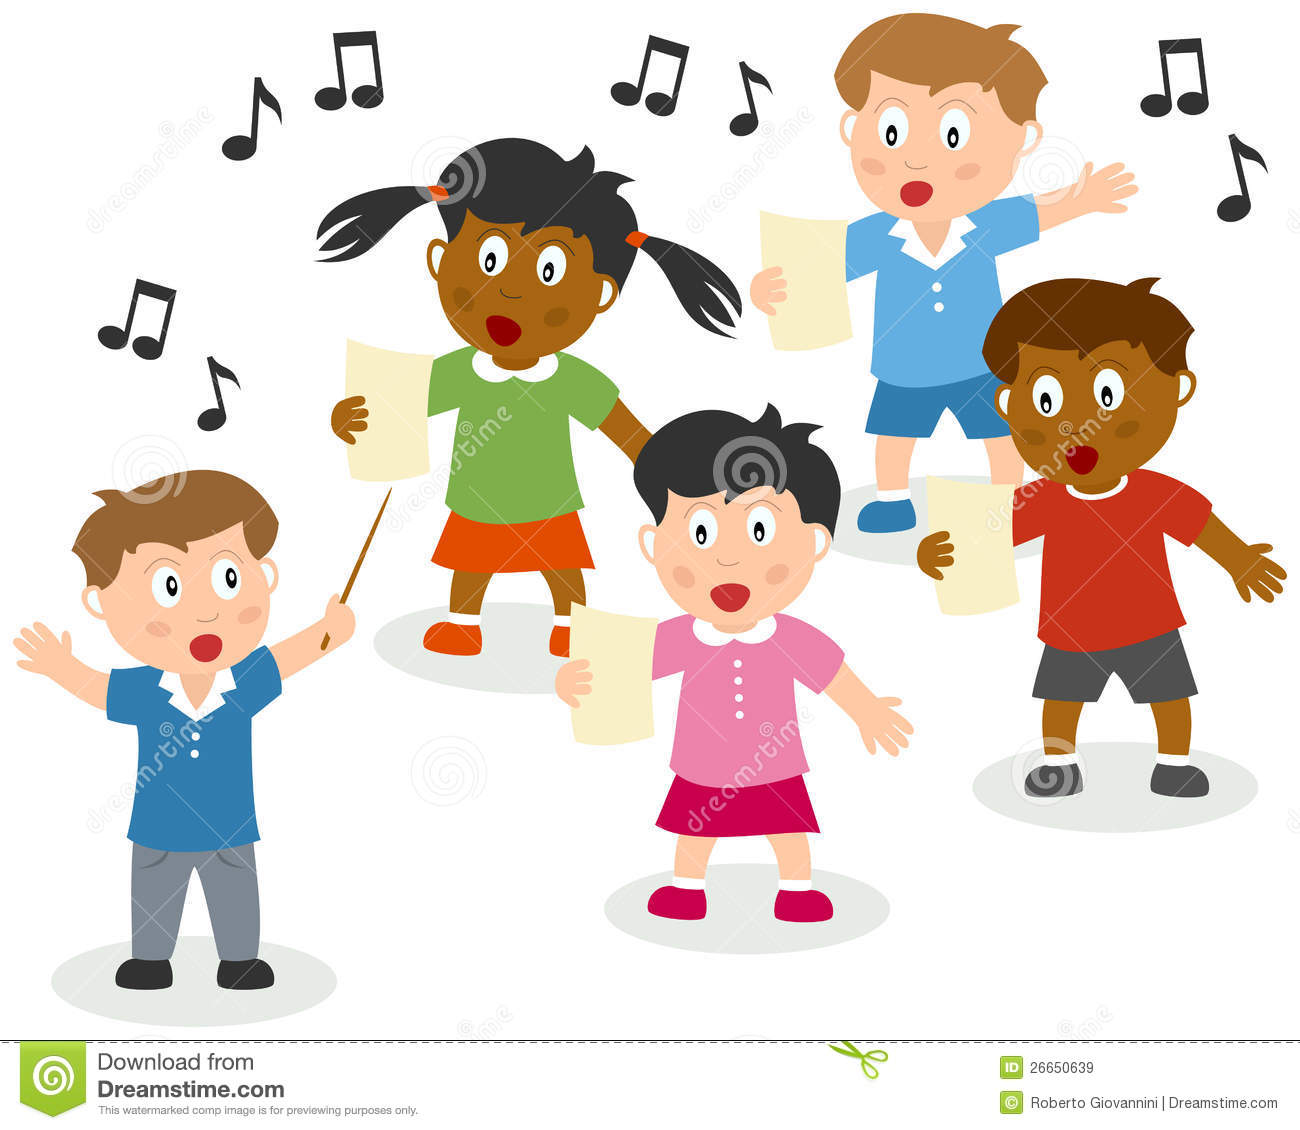 Kids Singing Royalty Free Stock Images - Image: 26650639